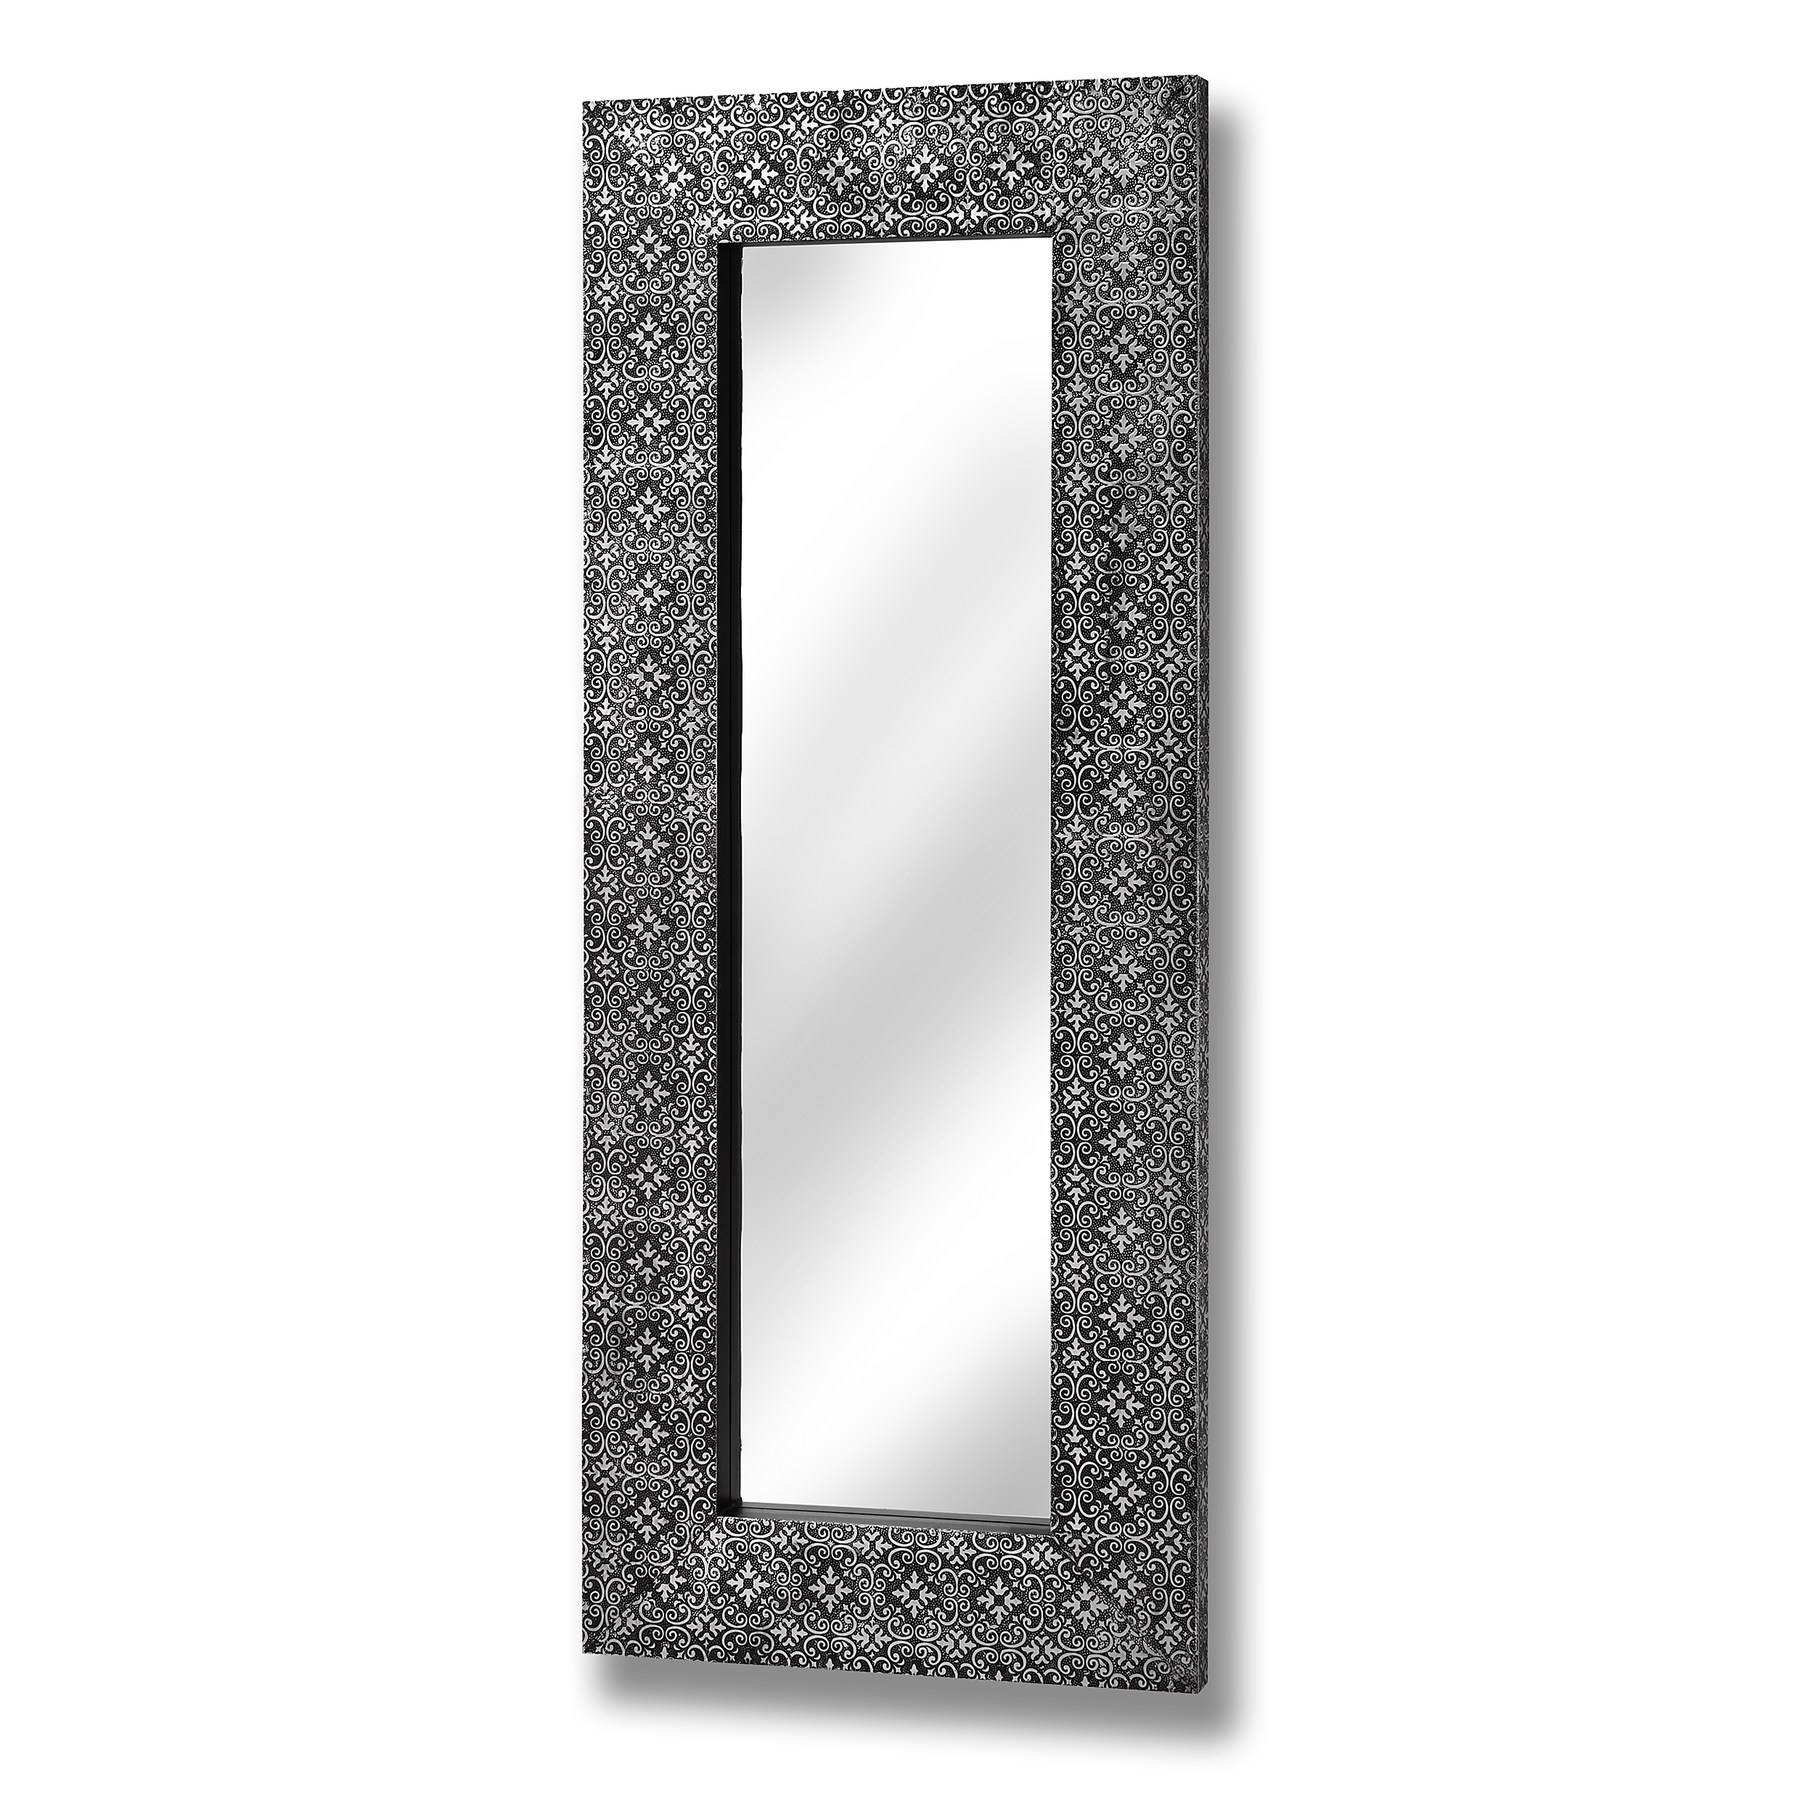 Large, Small, Floor, Vanity & Dressing Table Mirrors | Melody pertaining to Tall Silver Mirrors (Image 15 of 25)